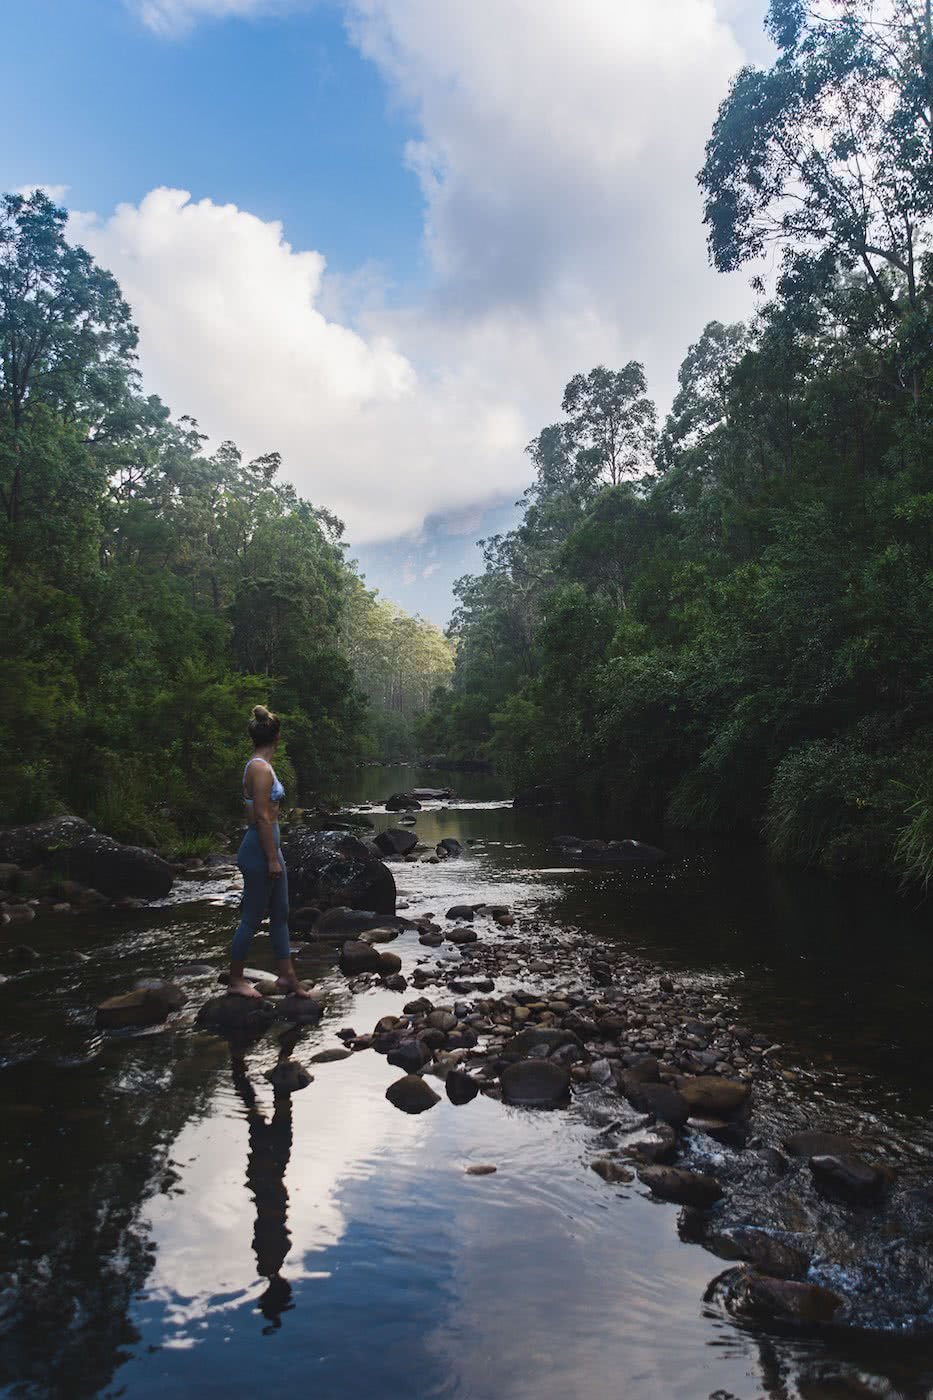 Escape From The Urban // Blackheath To Acacia Flat (NSW), Matt n Kat Pearce, Kat reflection, creek, forest